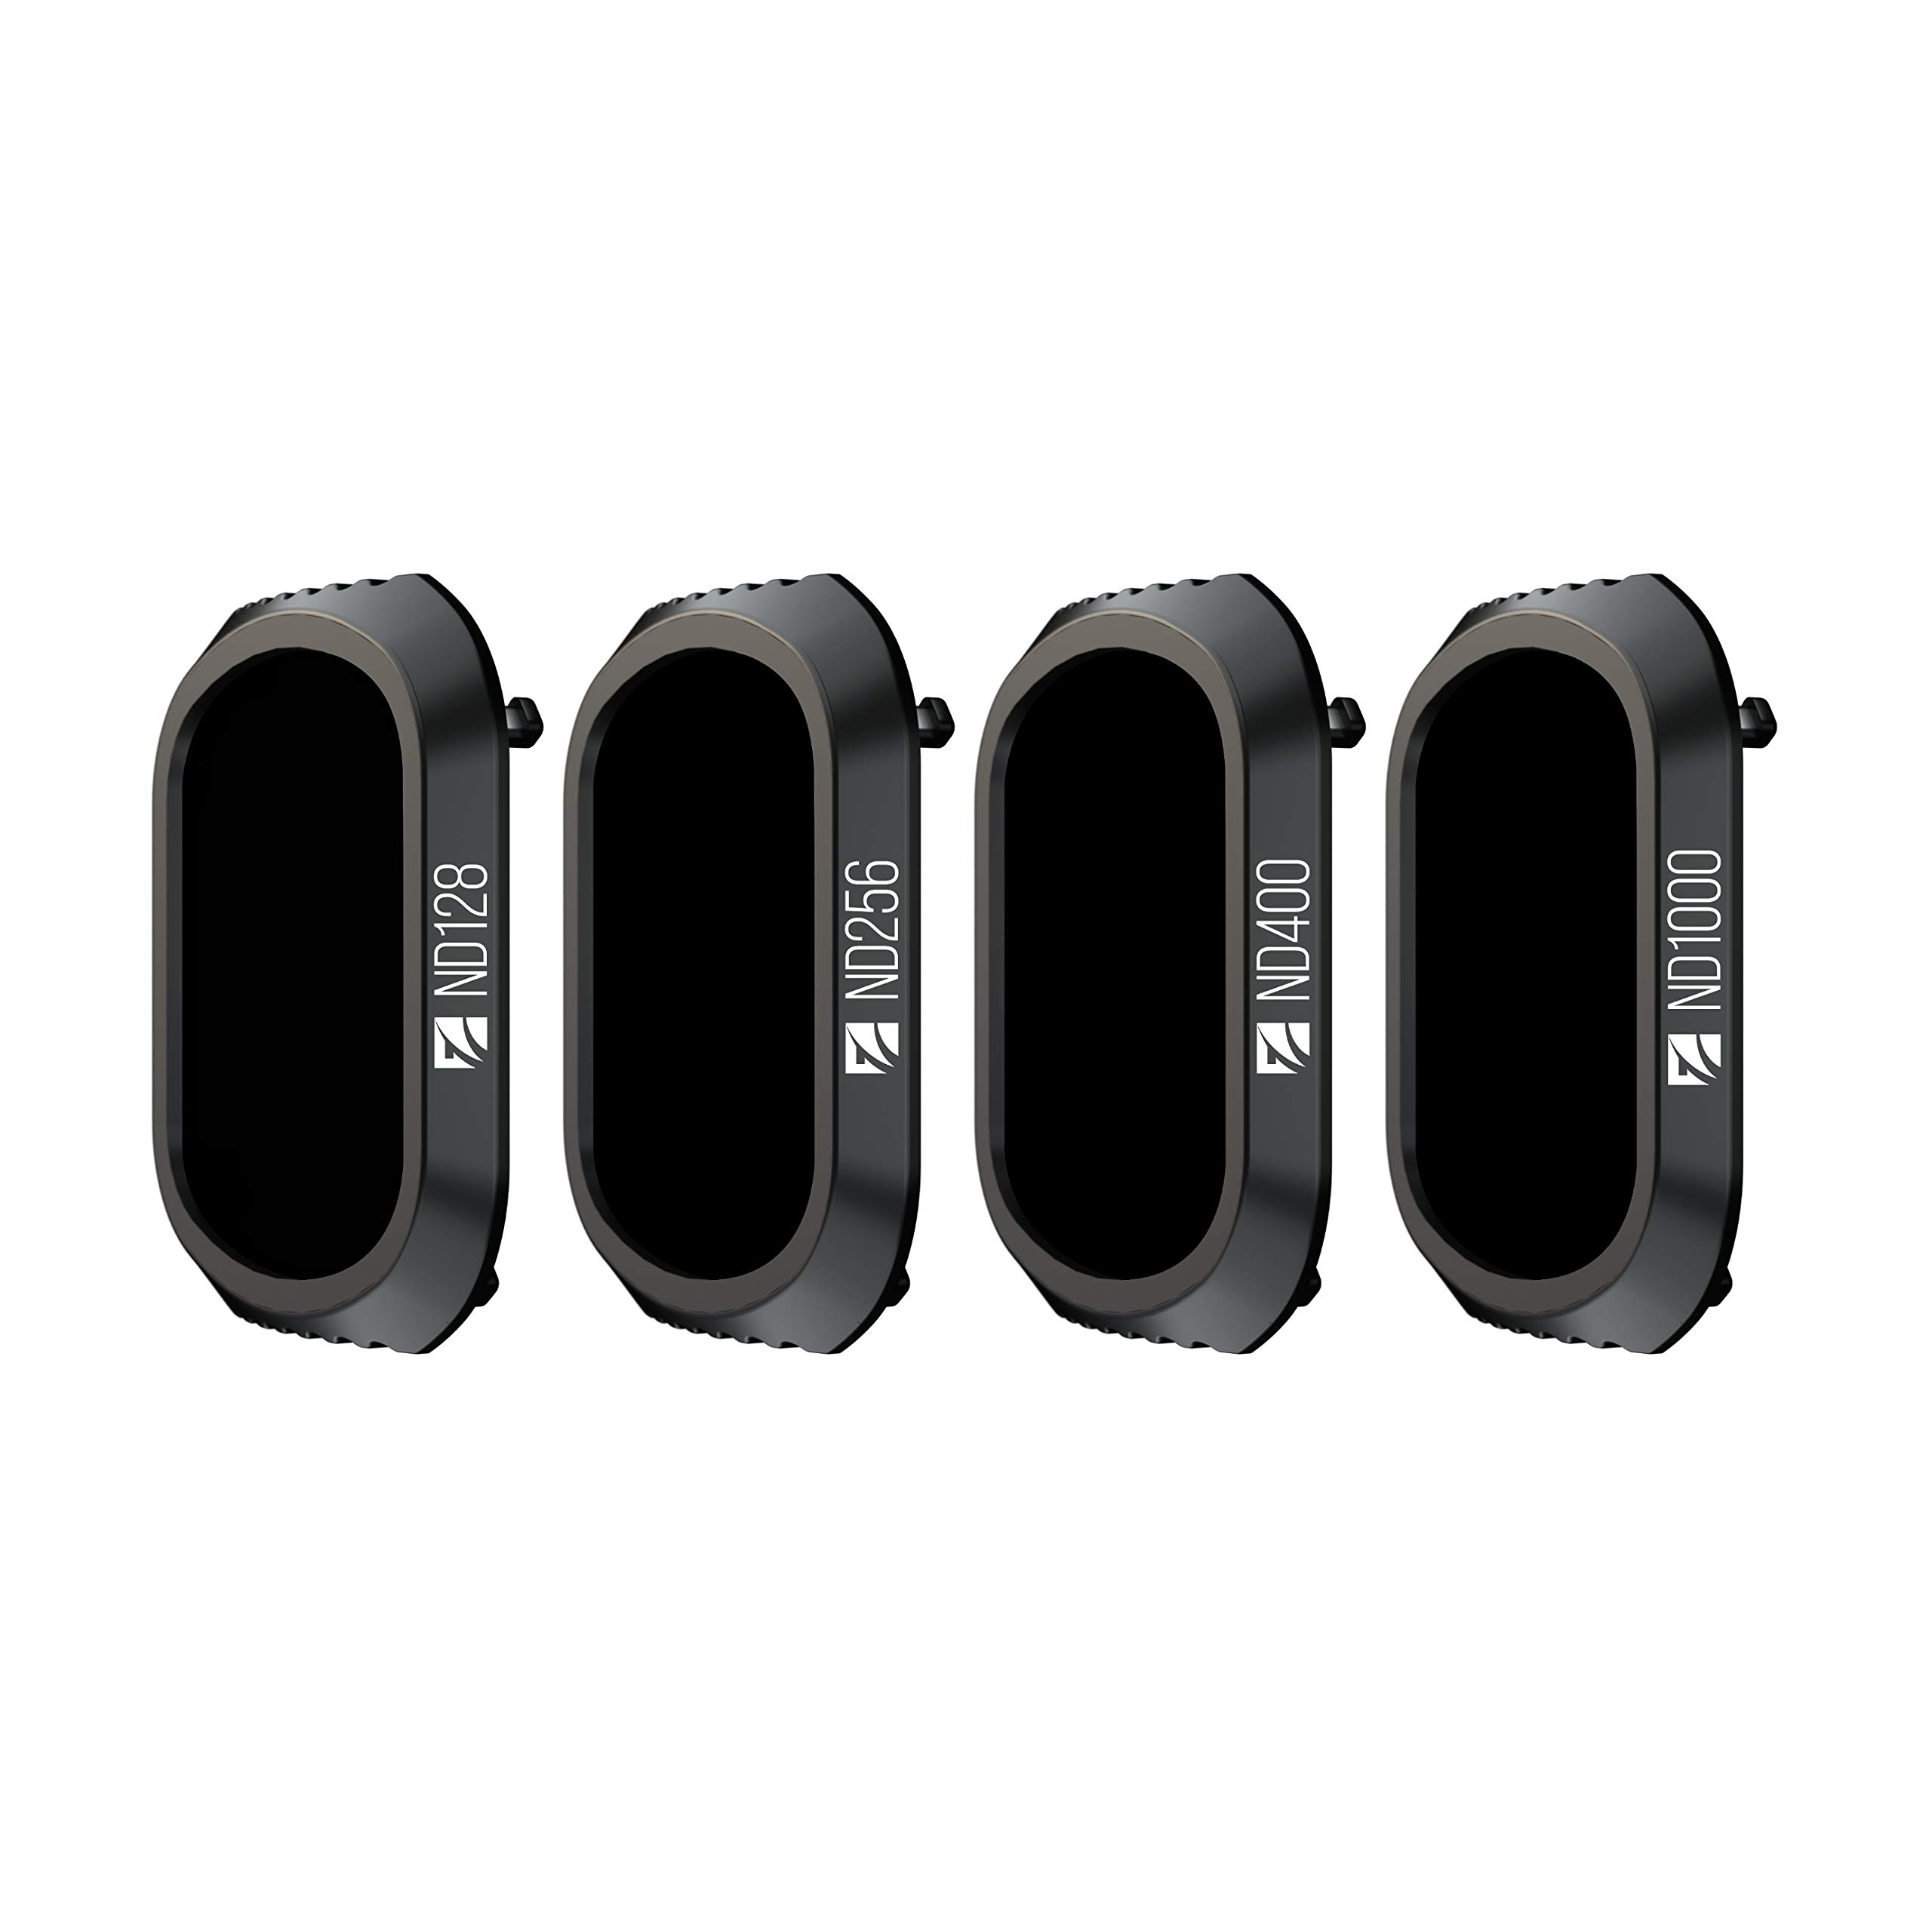 Freewell Long Exposure Photography- 4K Series - 4Pack ND128, ND256, ND400, ND1000 Camera Lens Filters Compatible with DJI Mavic 2 Pro Drone